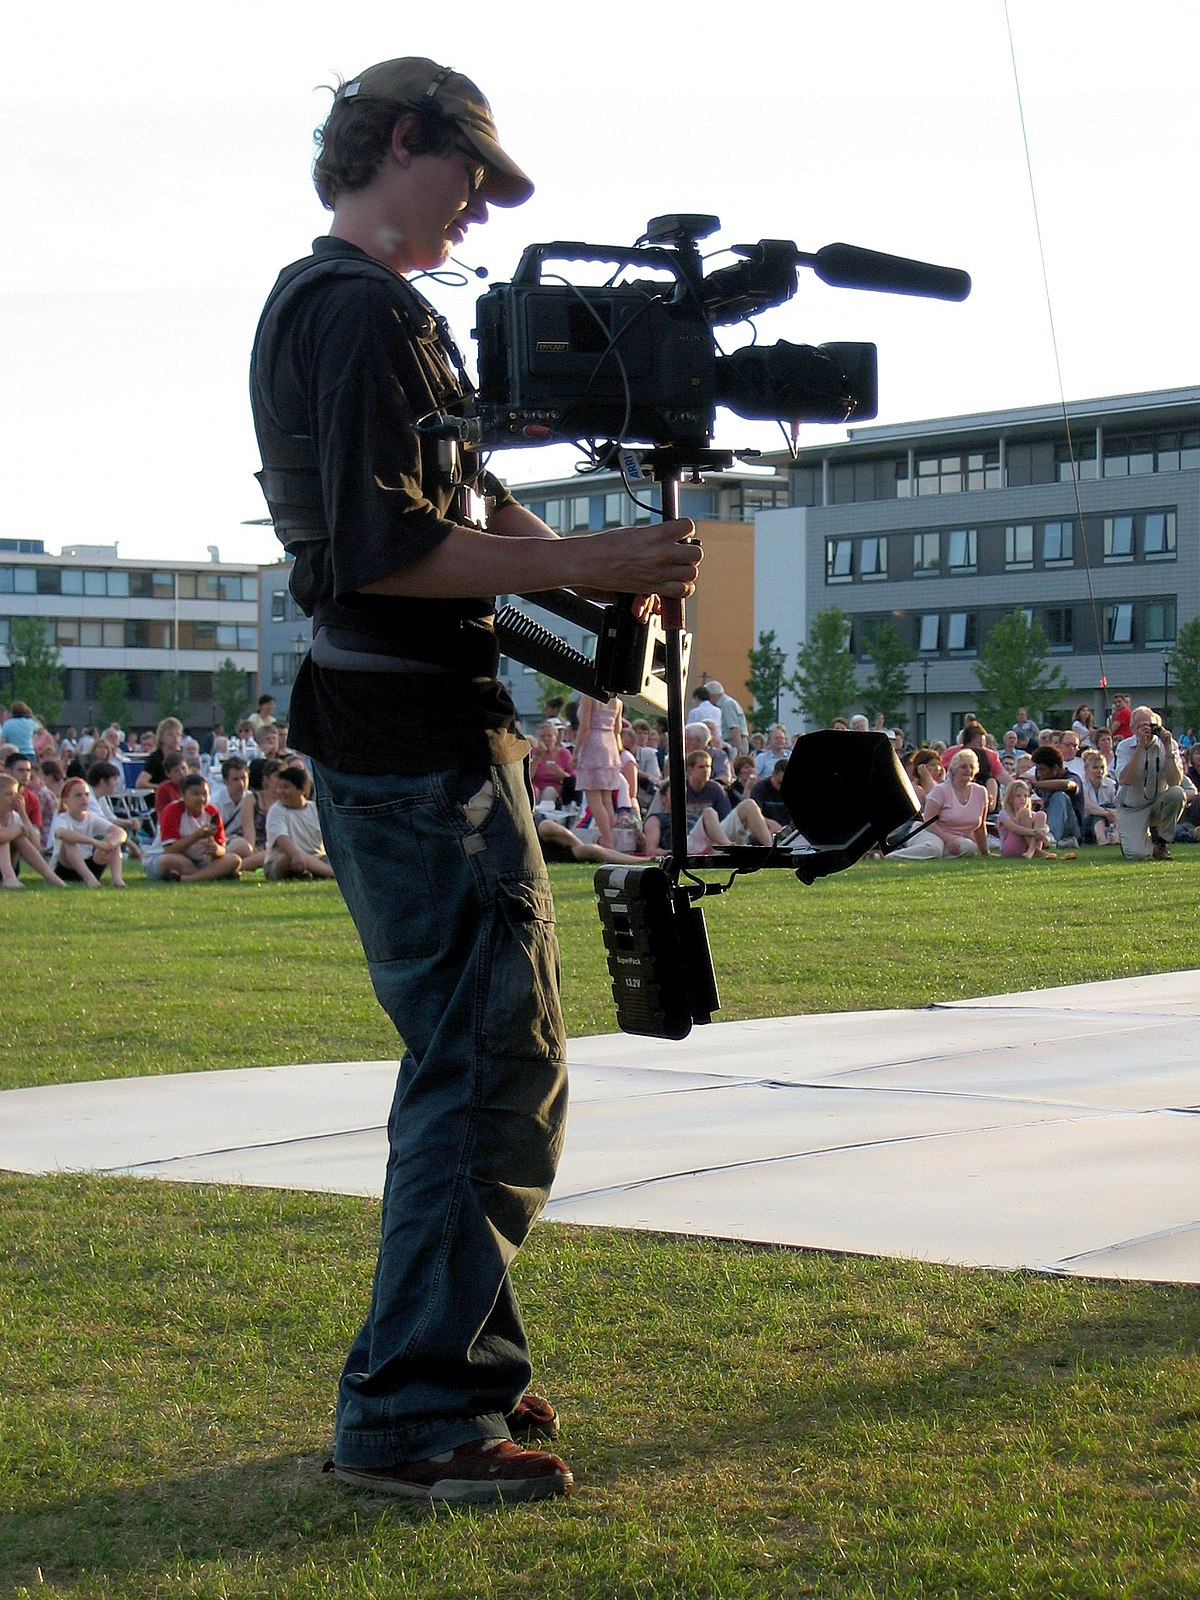 Steadicam and operator in front of crowd.jpg